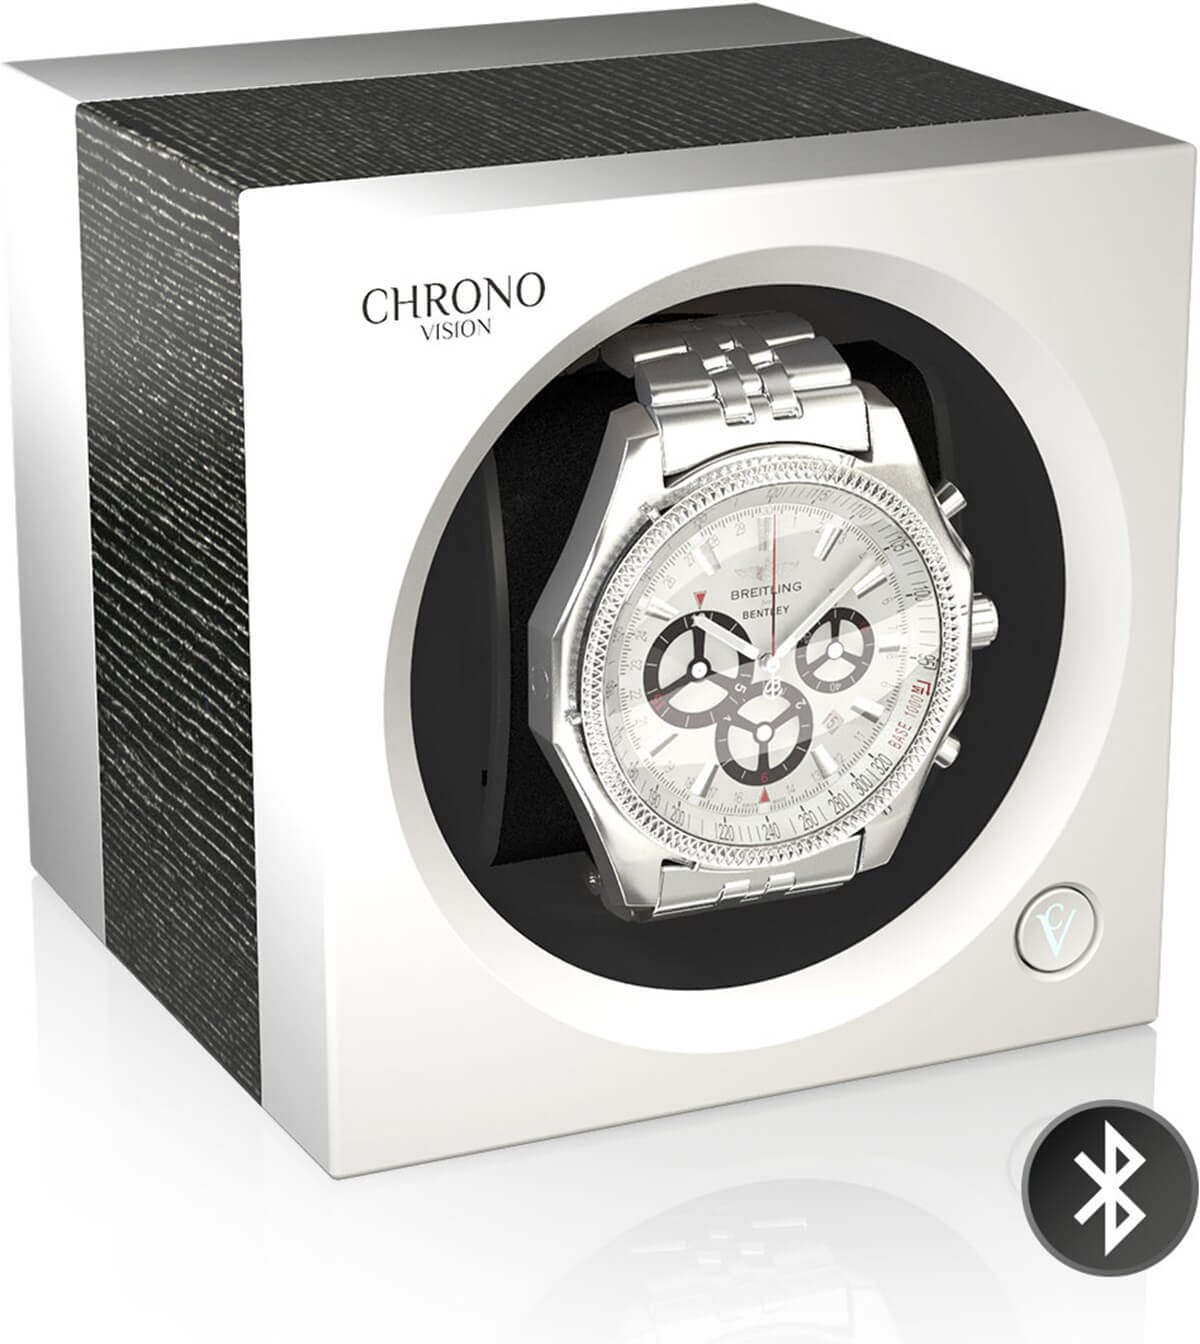 Chronovision watch winders